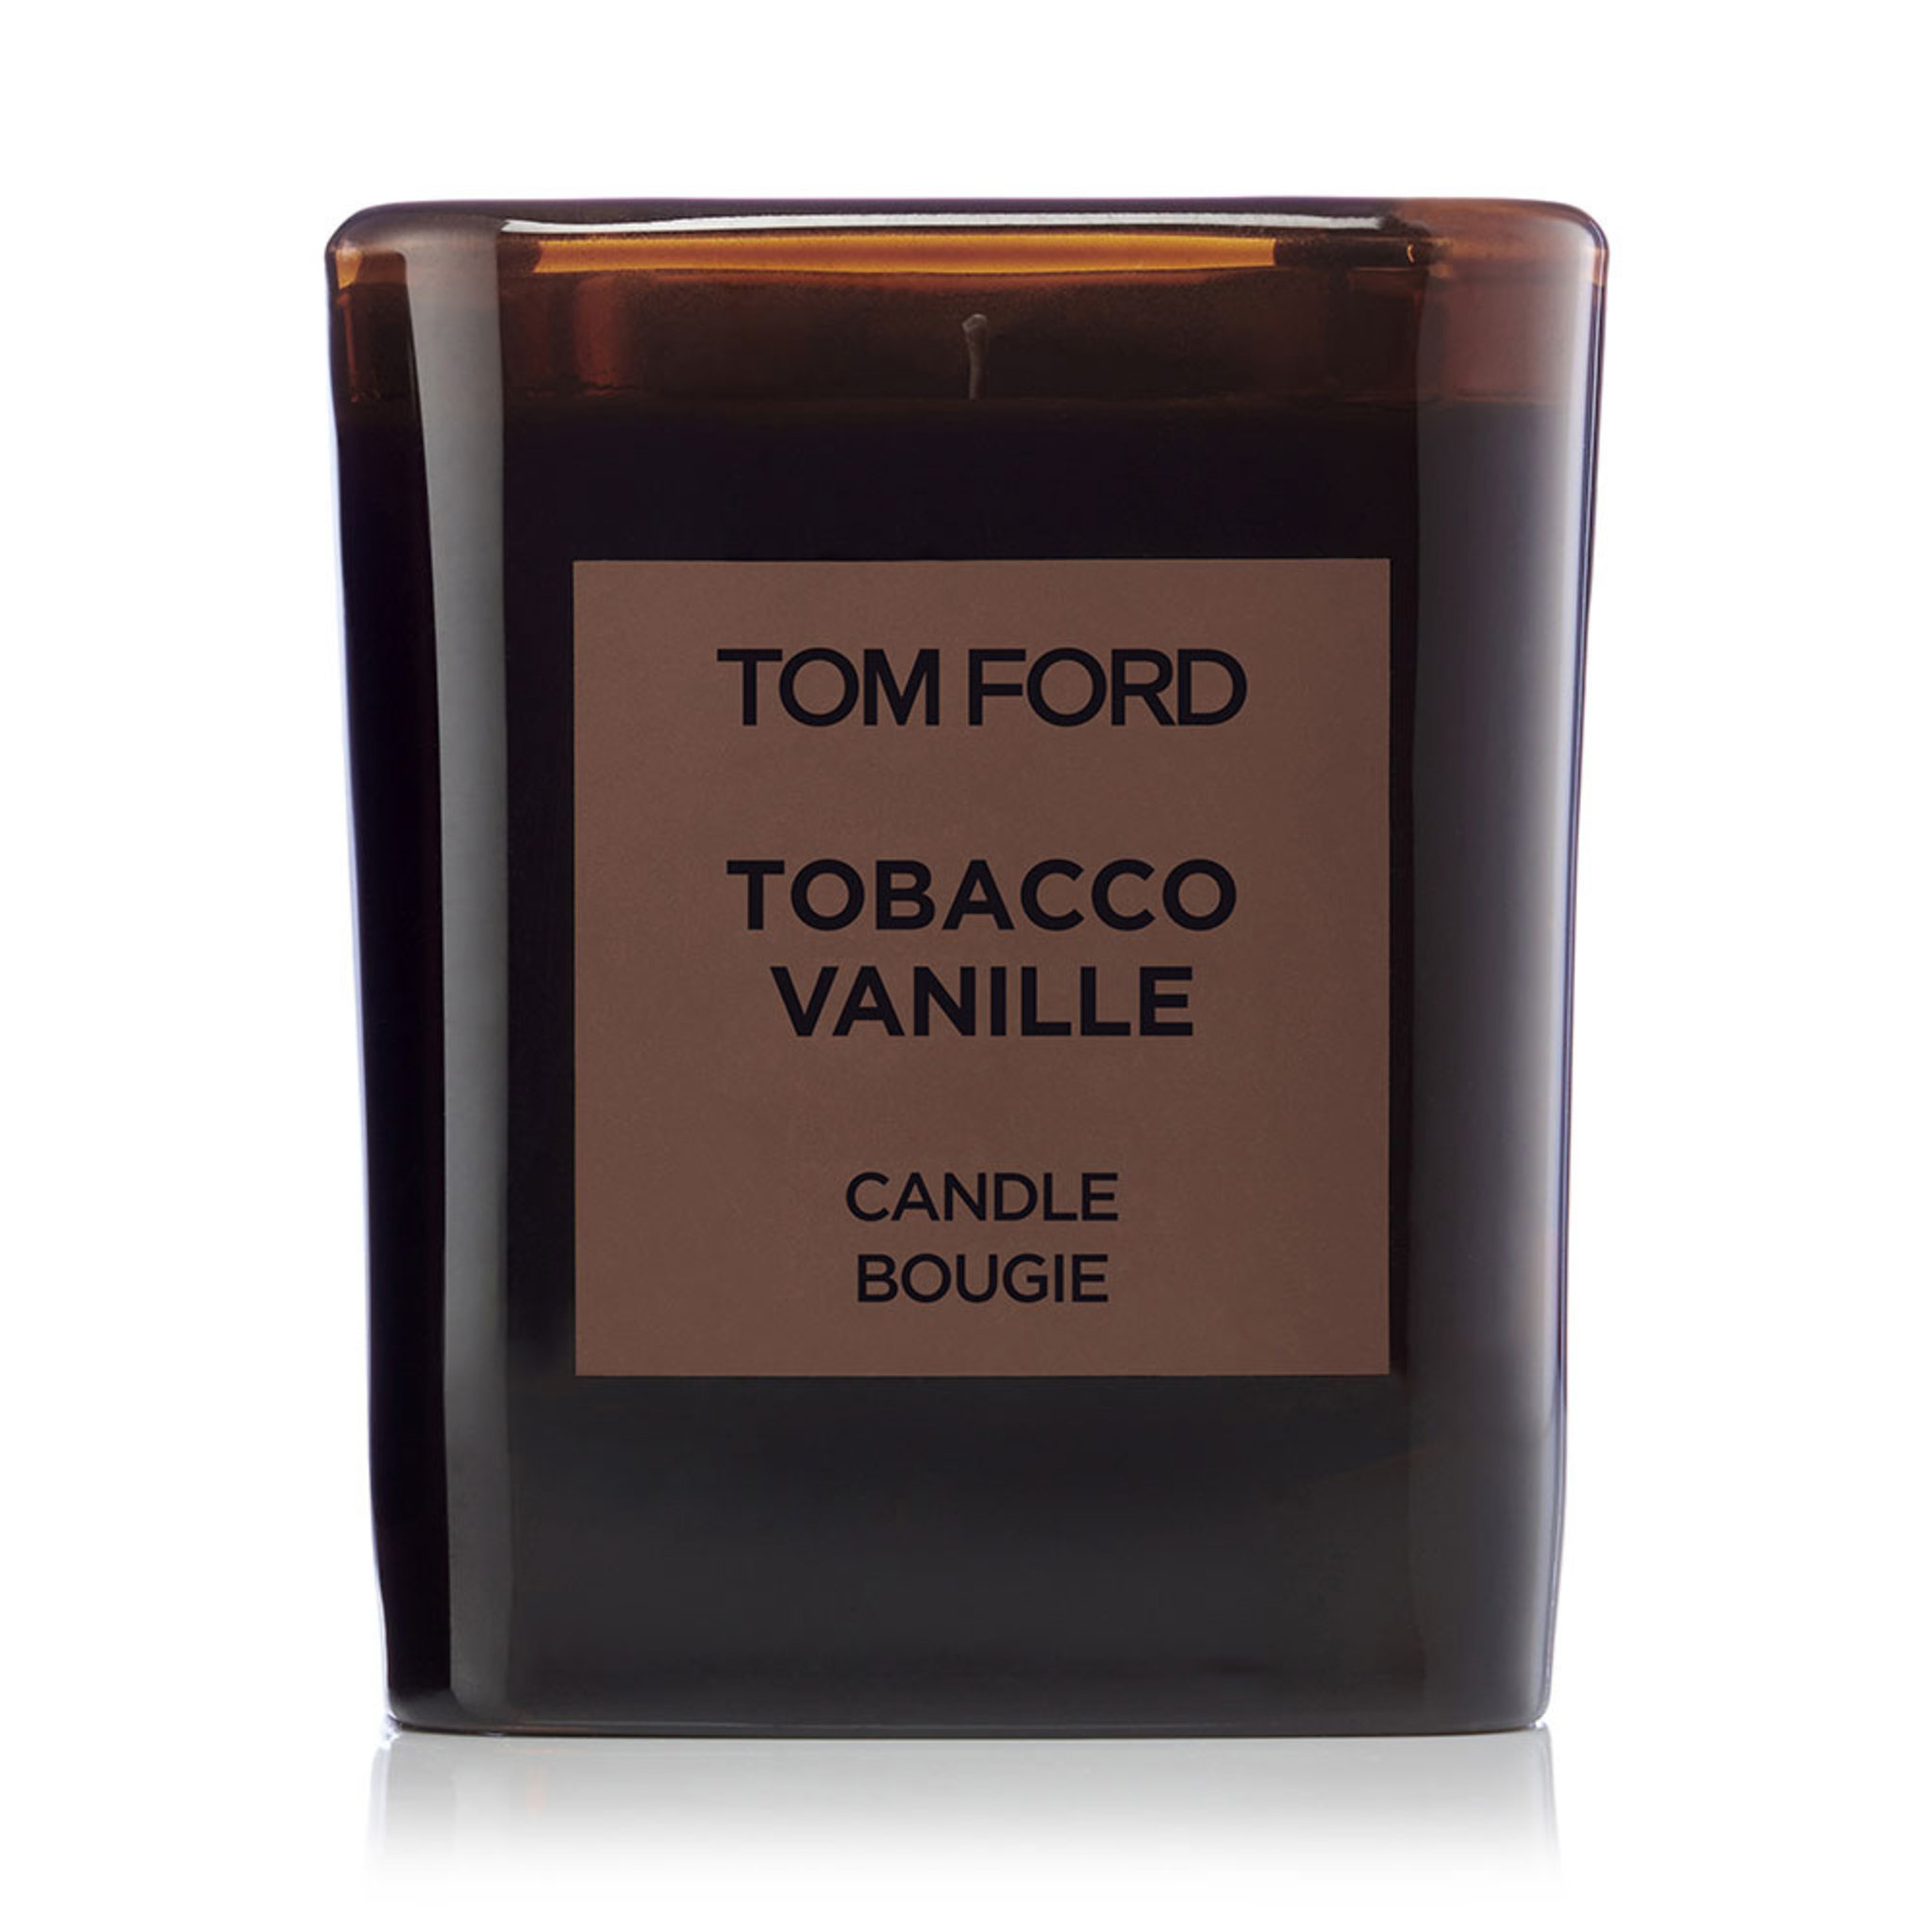 Tabacco Vanille, 595 g